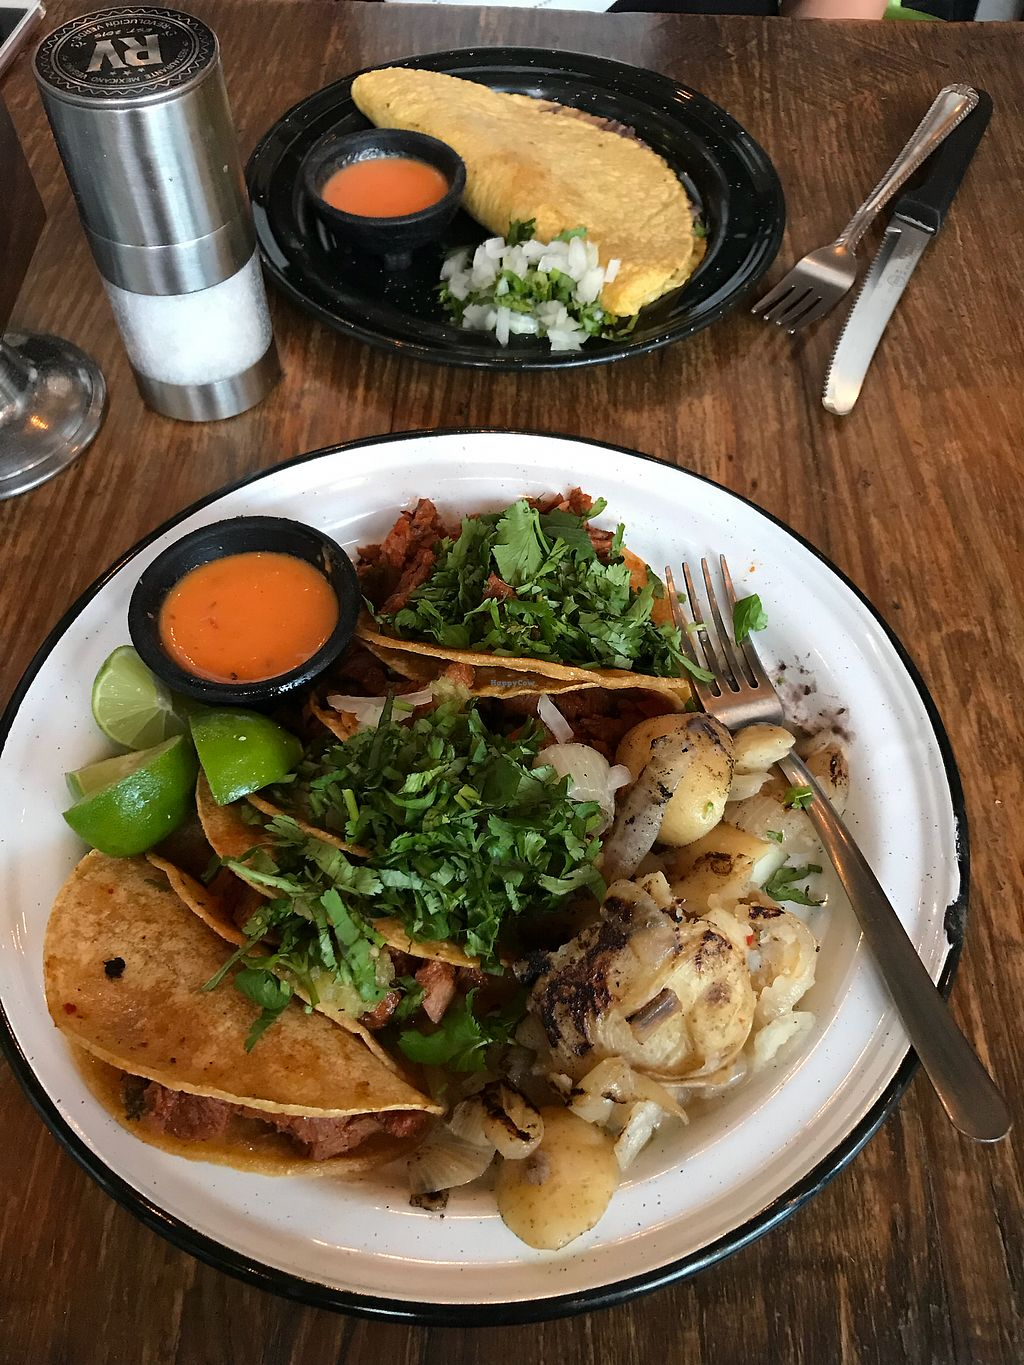 """Photo of Revolucion Verde  by <a href=""""/members/profile/humus_andi"""">humus_andi</a> <br/>Vegan Tacos <br/> March 4, 2018  - <a href='/contact/abuse/image/55484/366402'>Report</a>"""